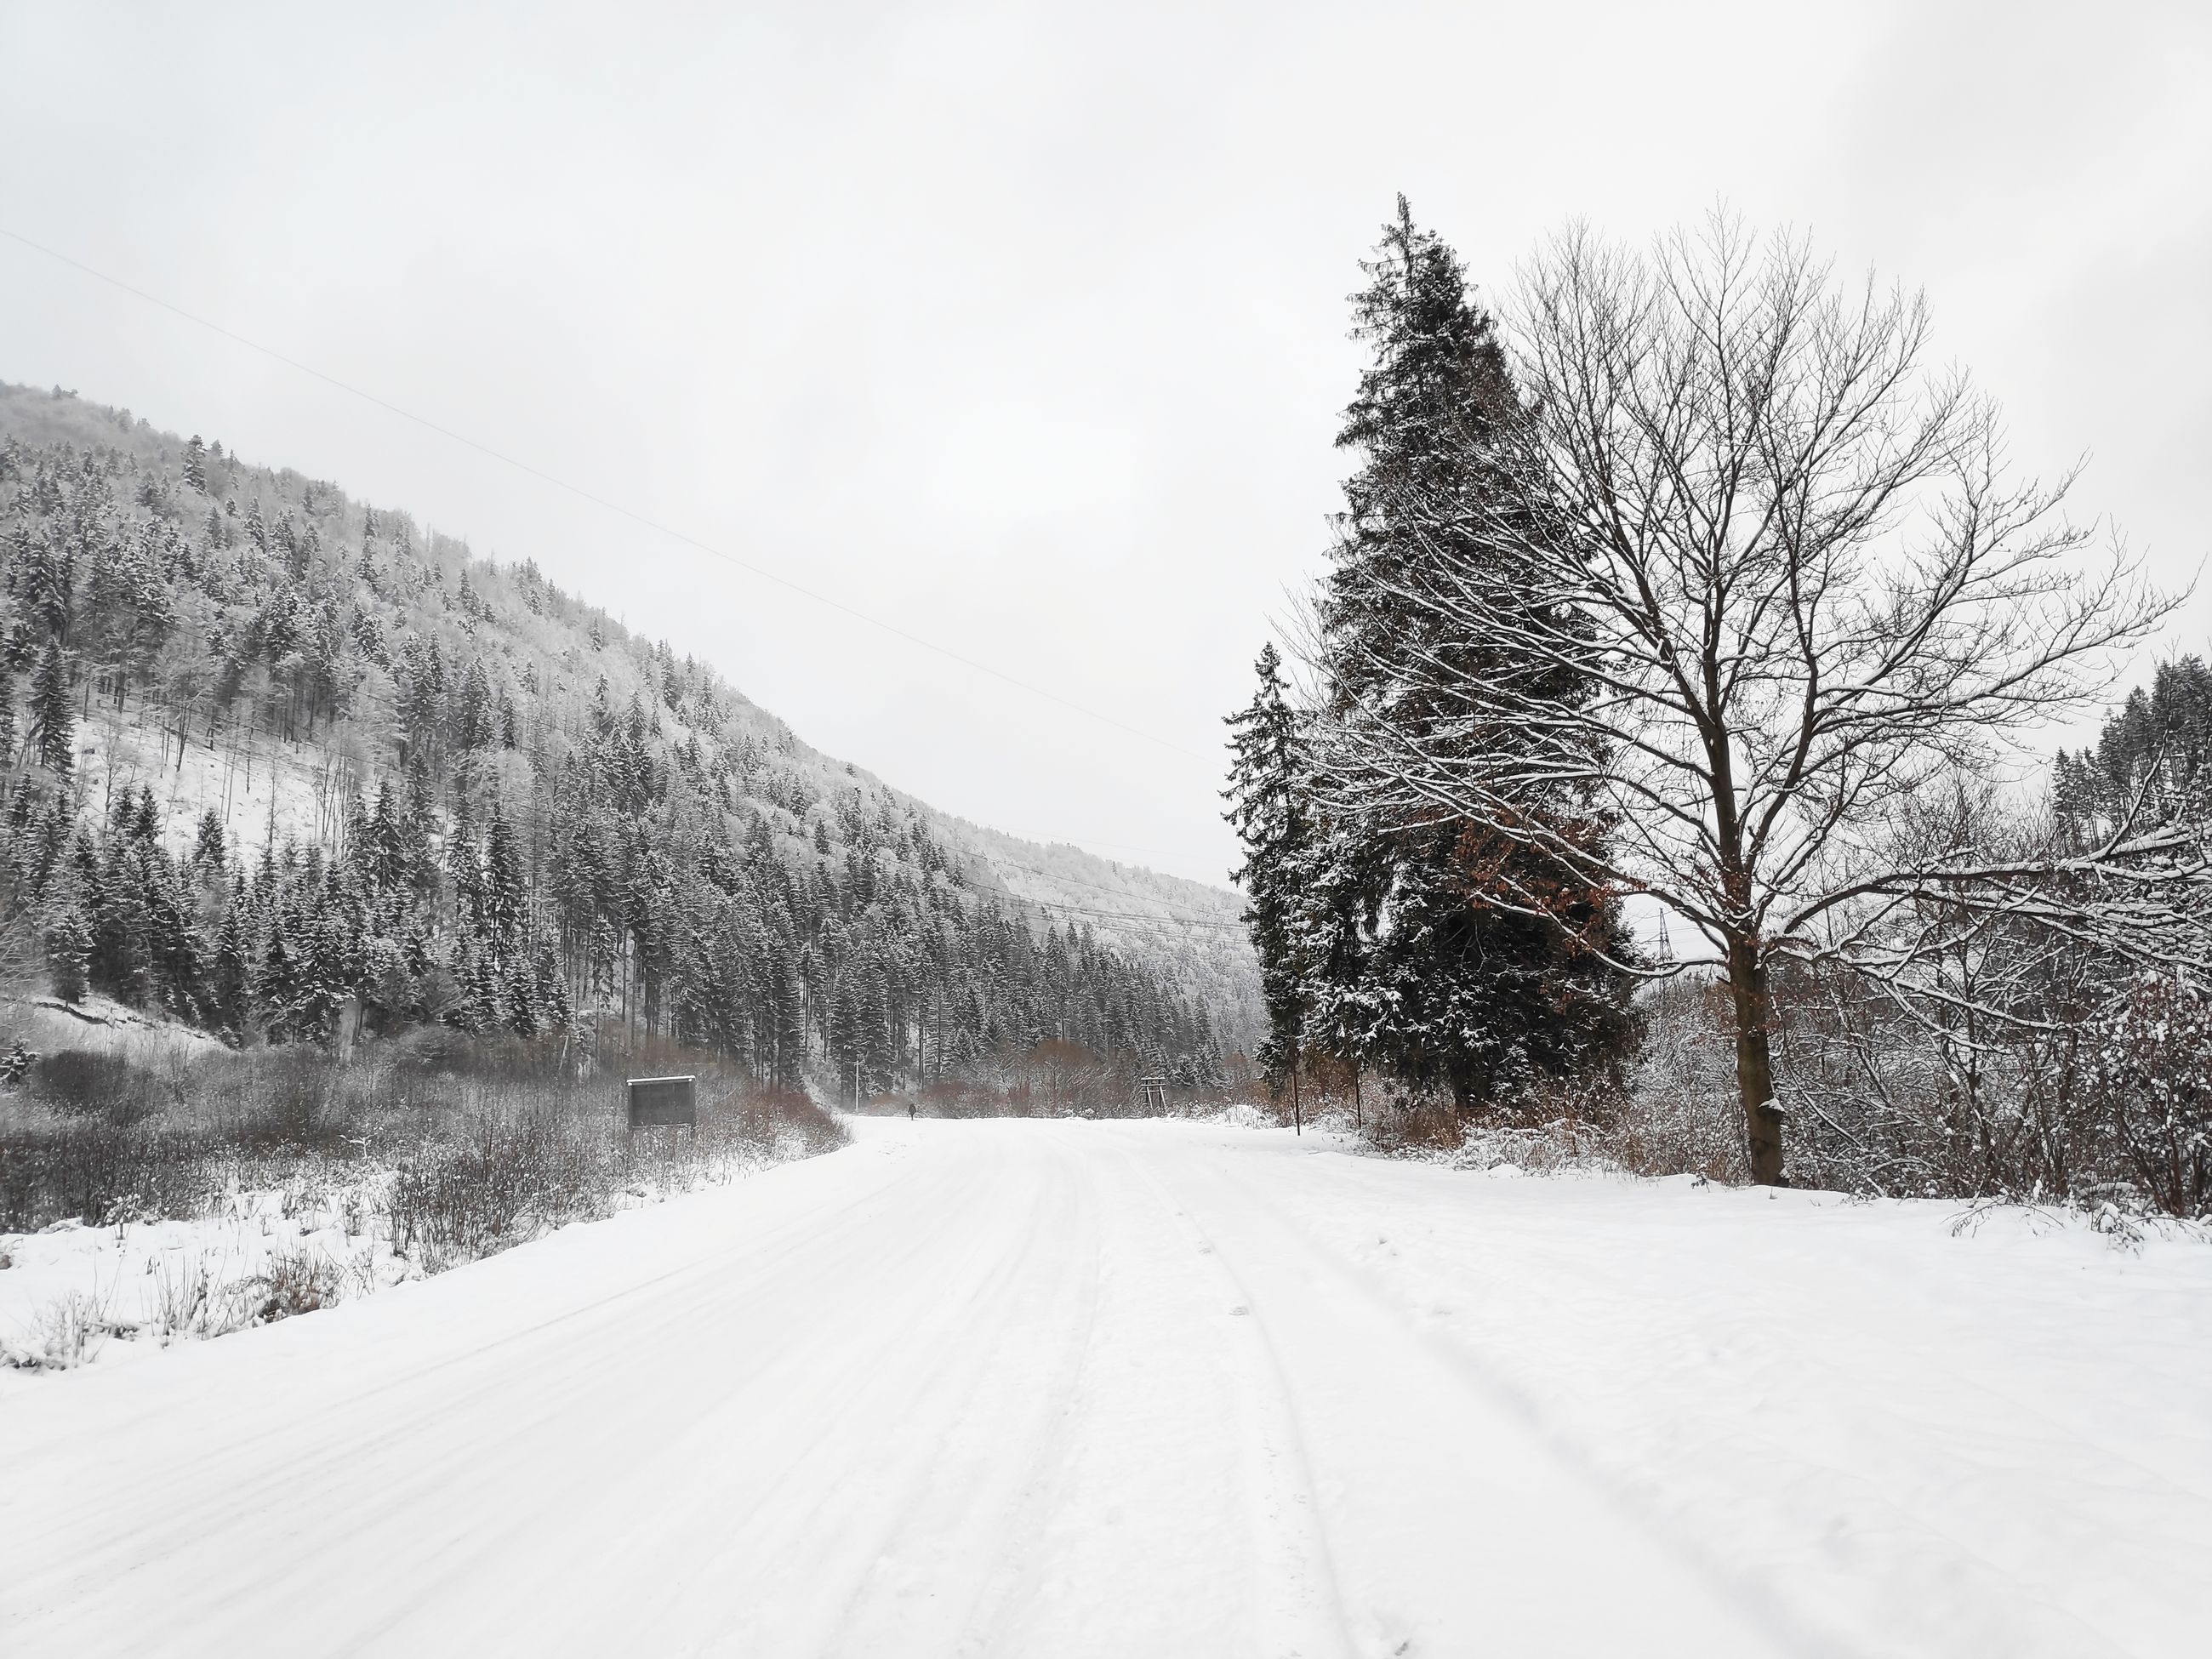 cold temperature, snow, winter, tree, transportation, the way forward, road, sky, direction, plant, no people, bare tree, beauty in nature, nature, covering, scenics - nature, white color, tranquil scene, day, diminishing perspective, outdoors, snowing, long